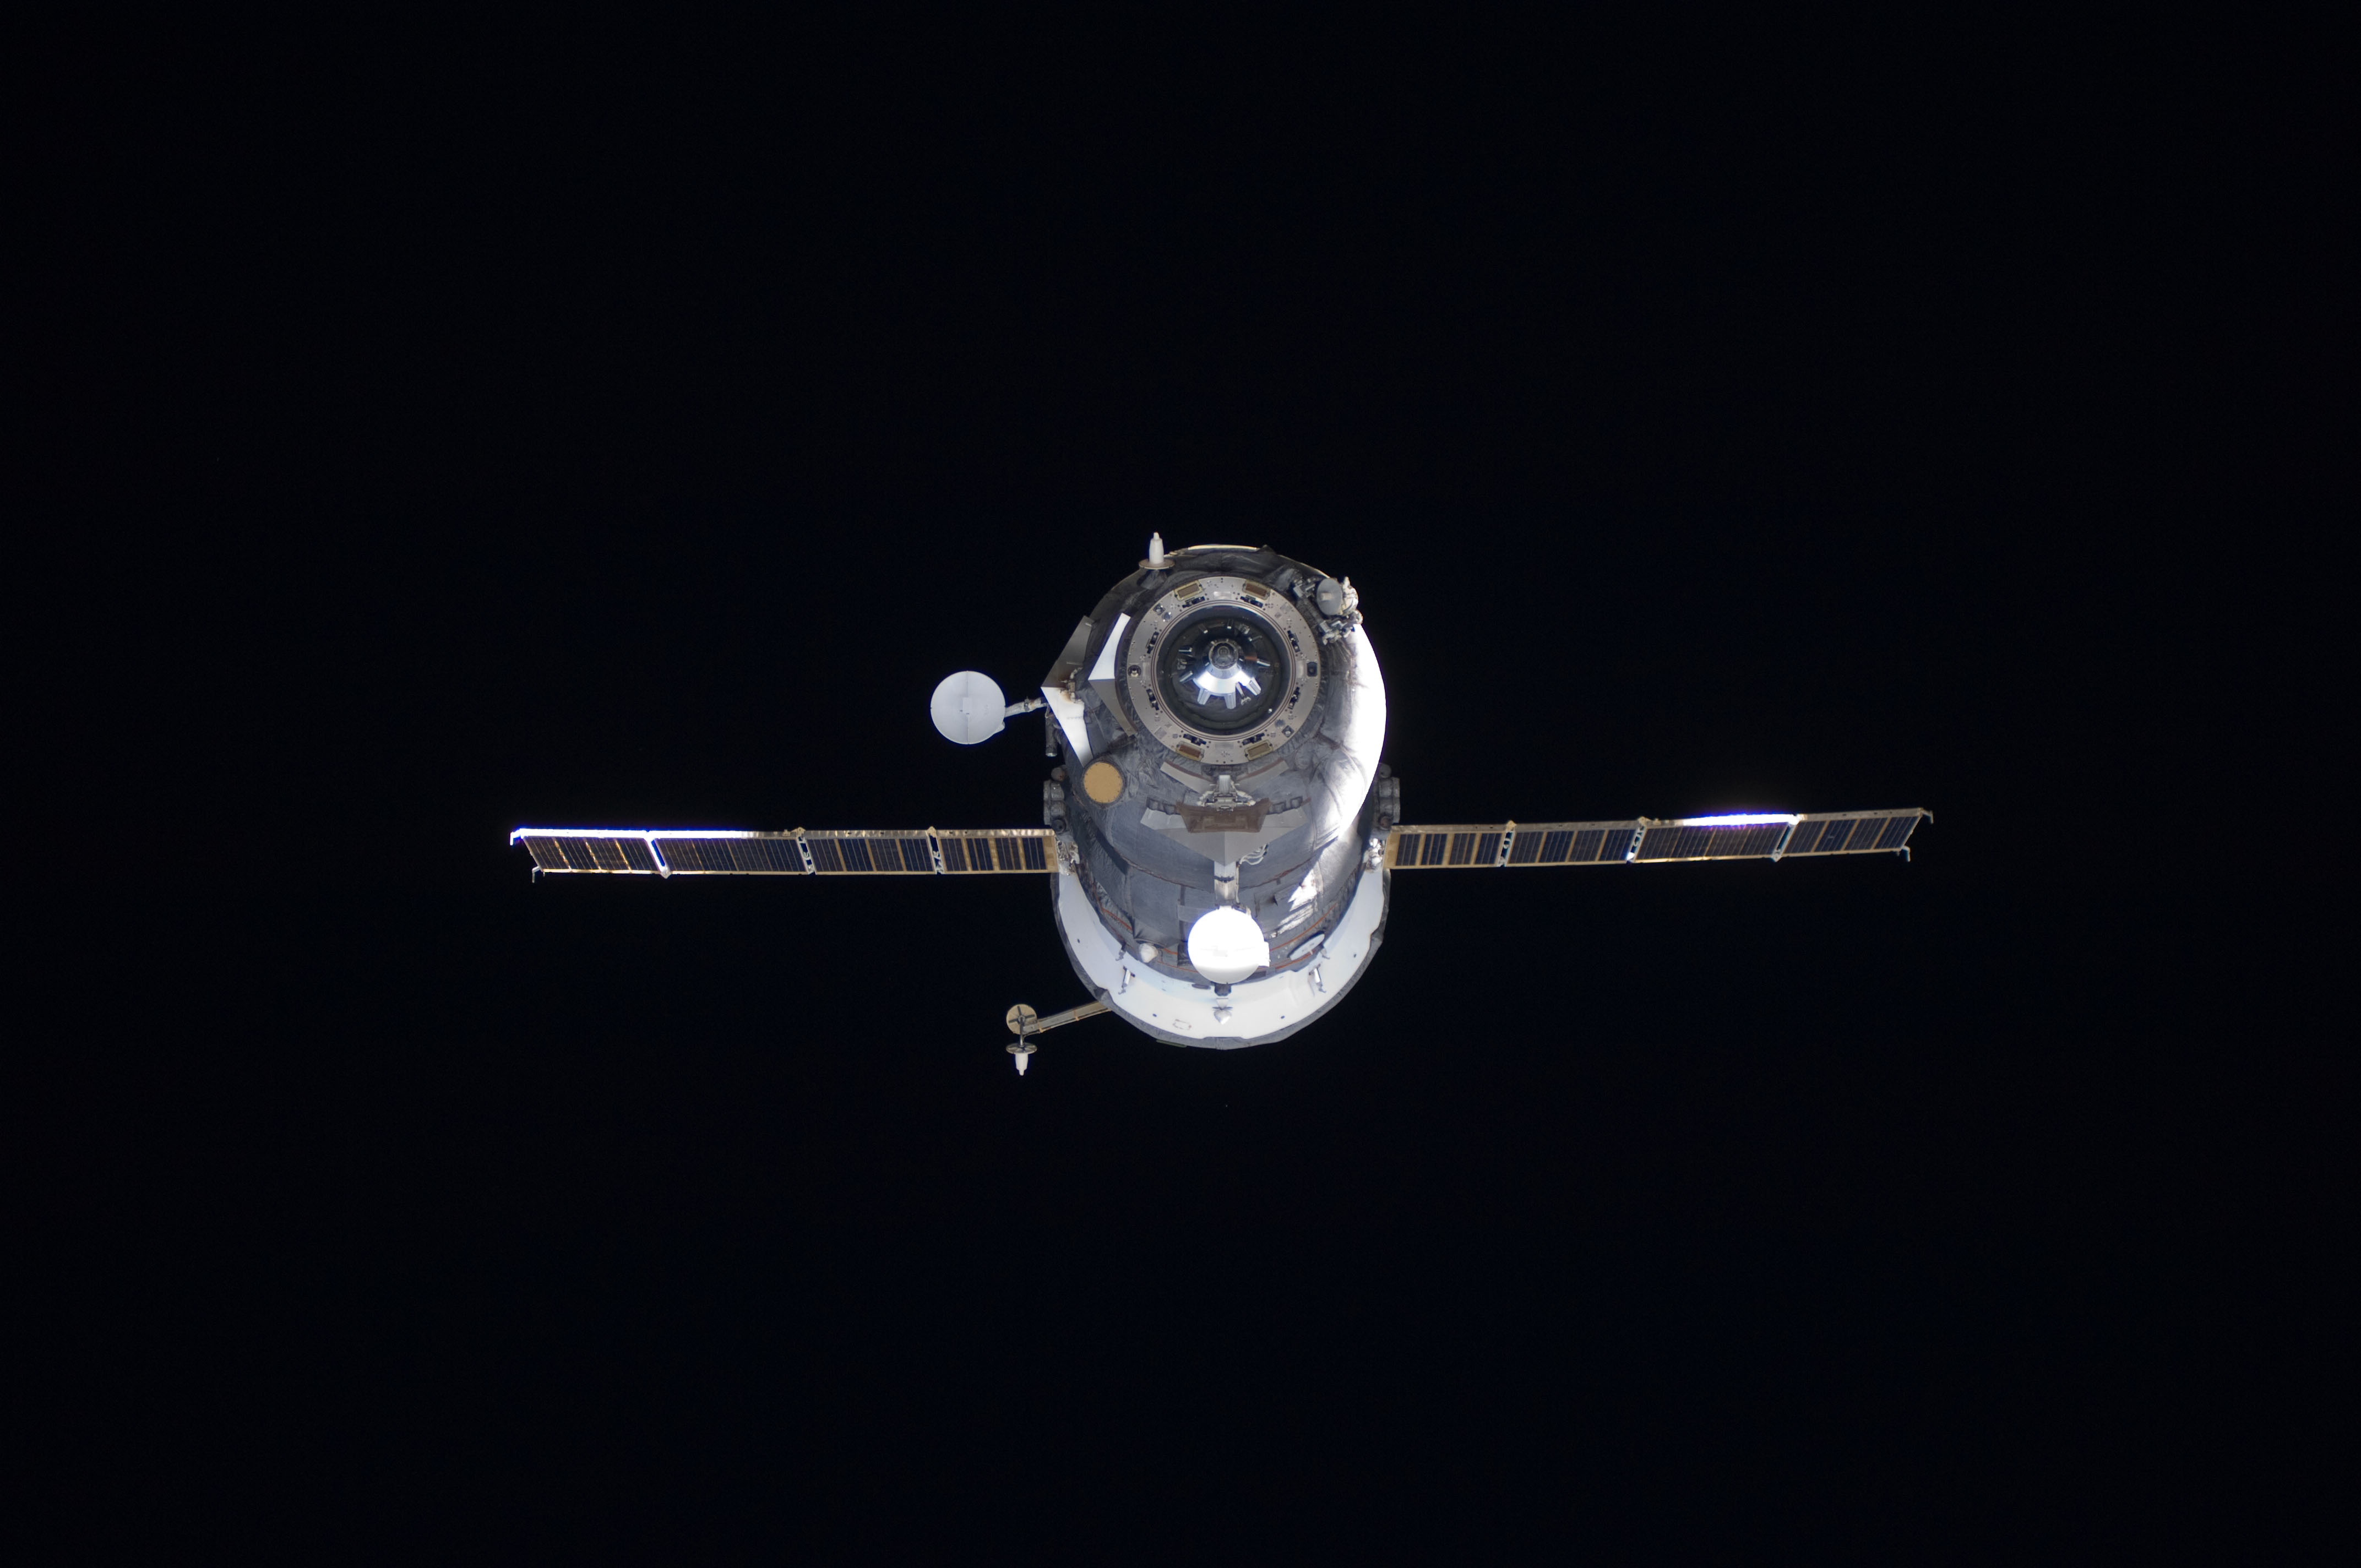 The Progress 42 Vehicle Departs the International Space Station